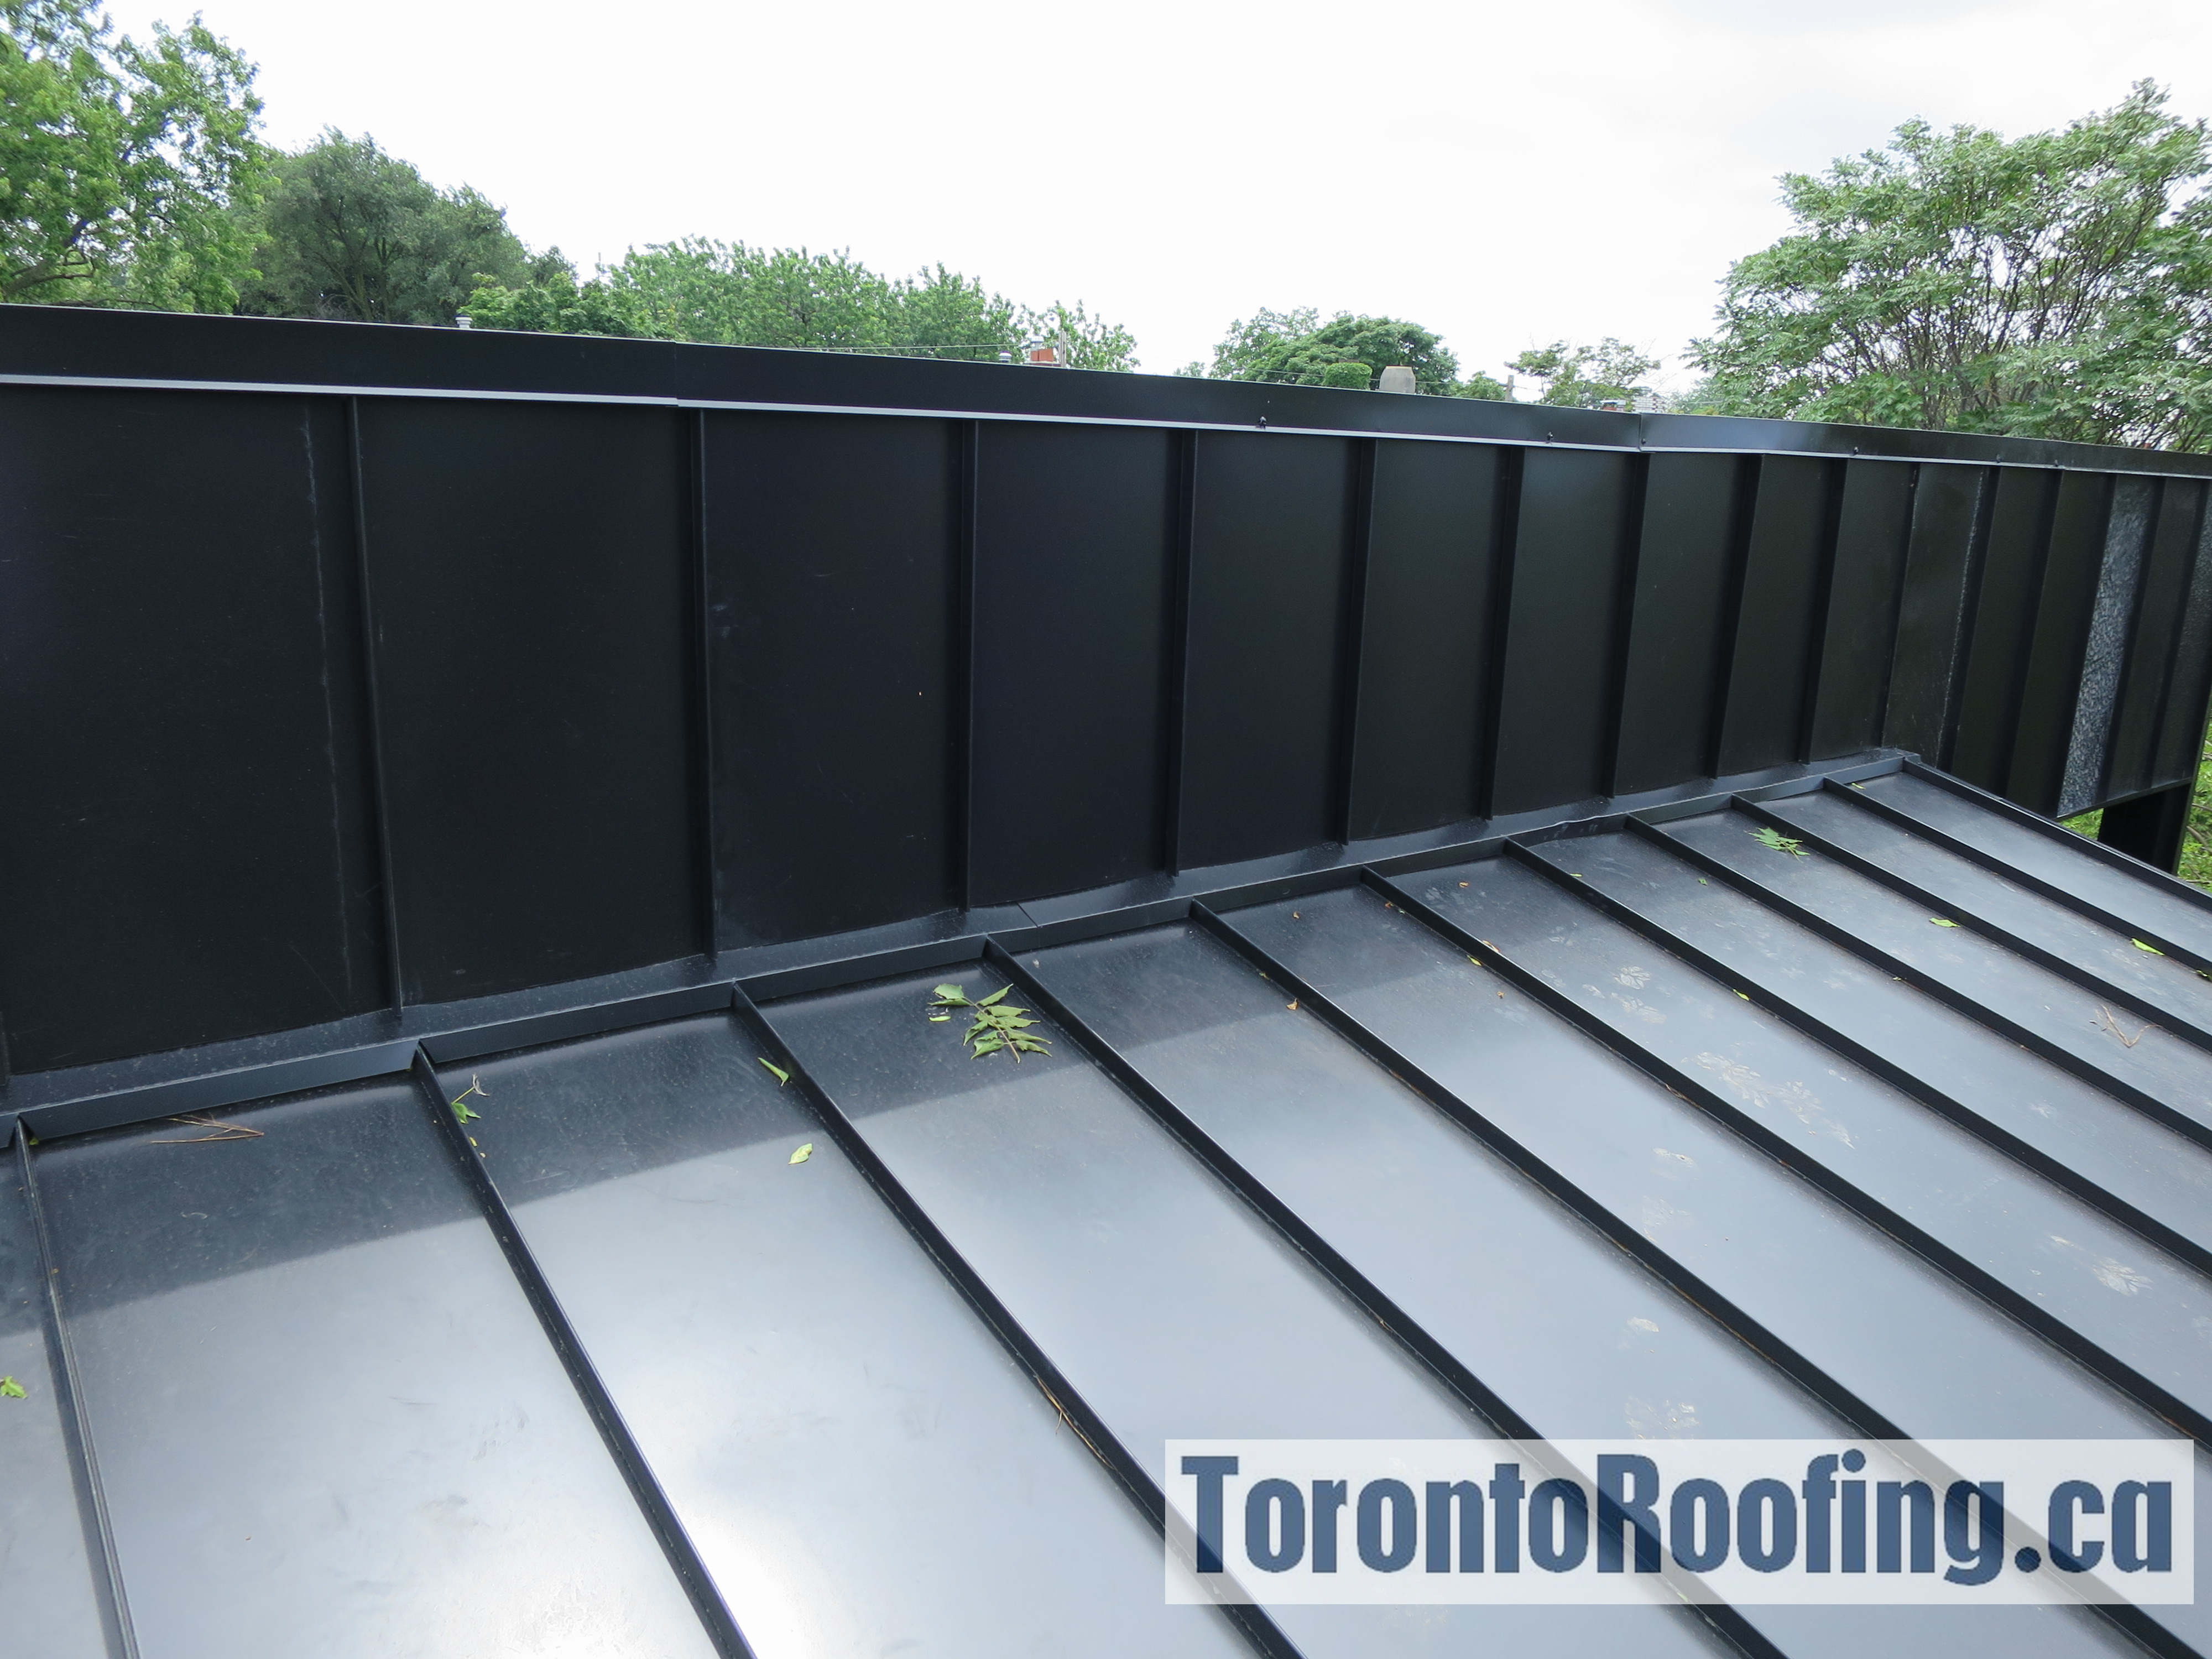 toronto-roofing-standing-seam-metal-roof-roofing-toronto-metal-roofing-roofing-contractor-2